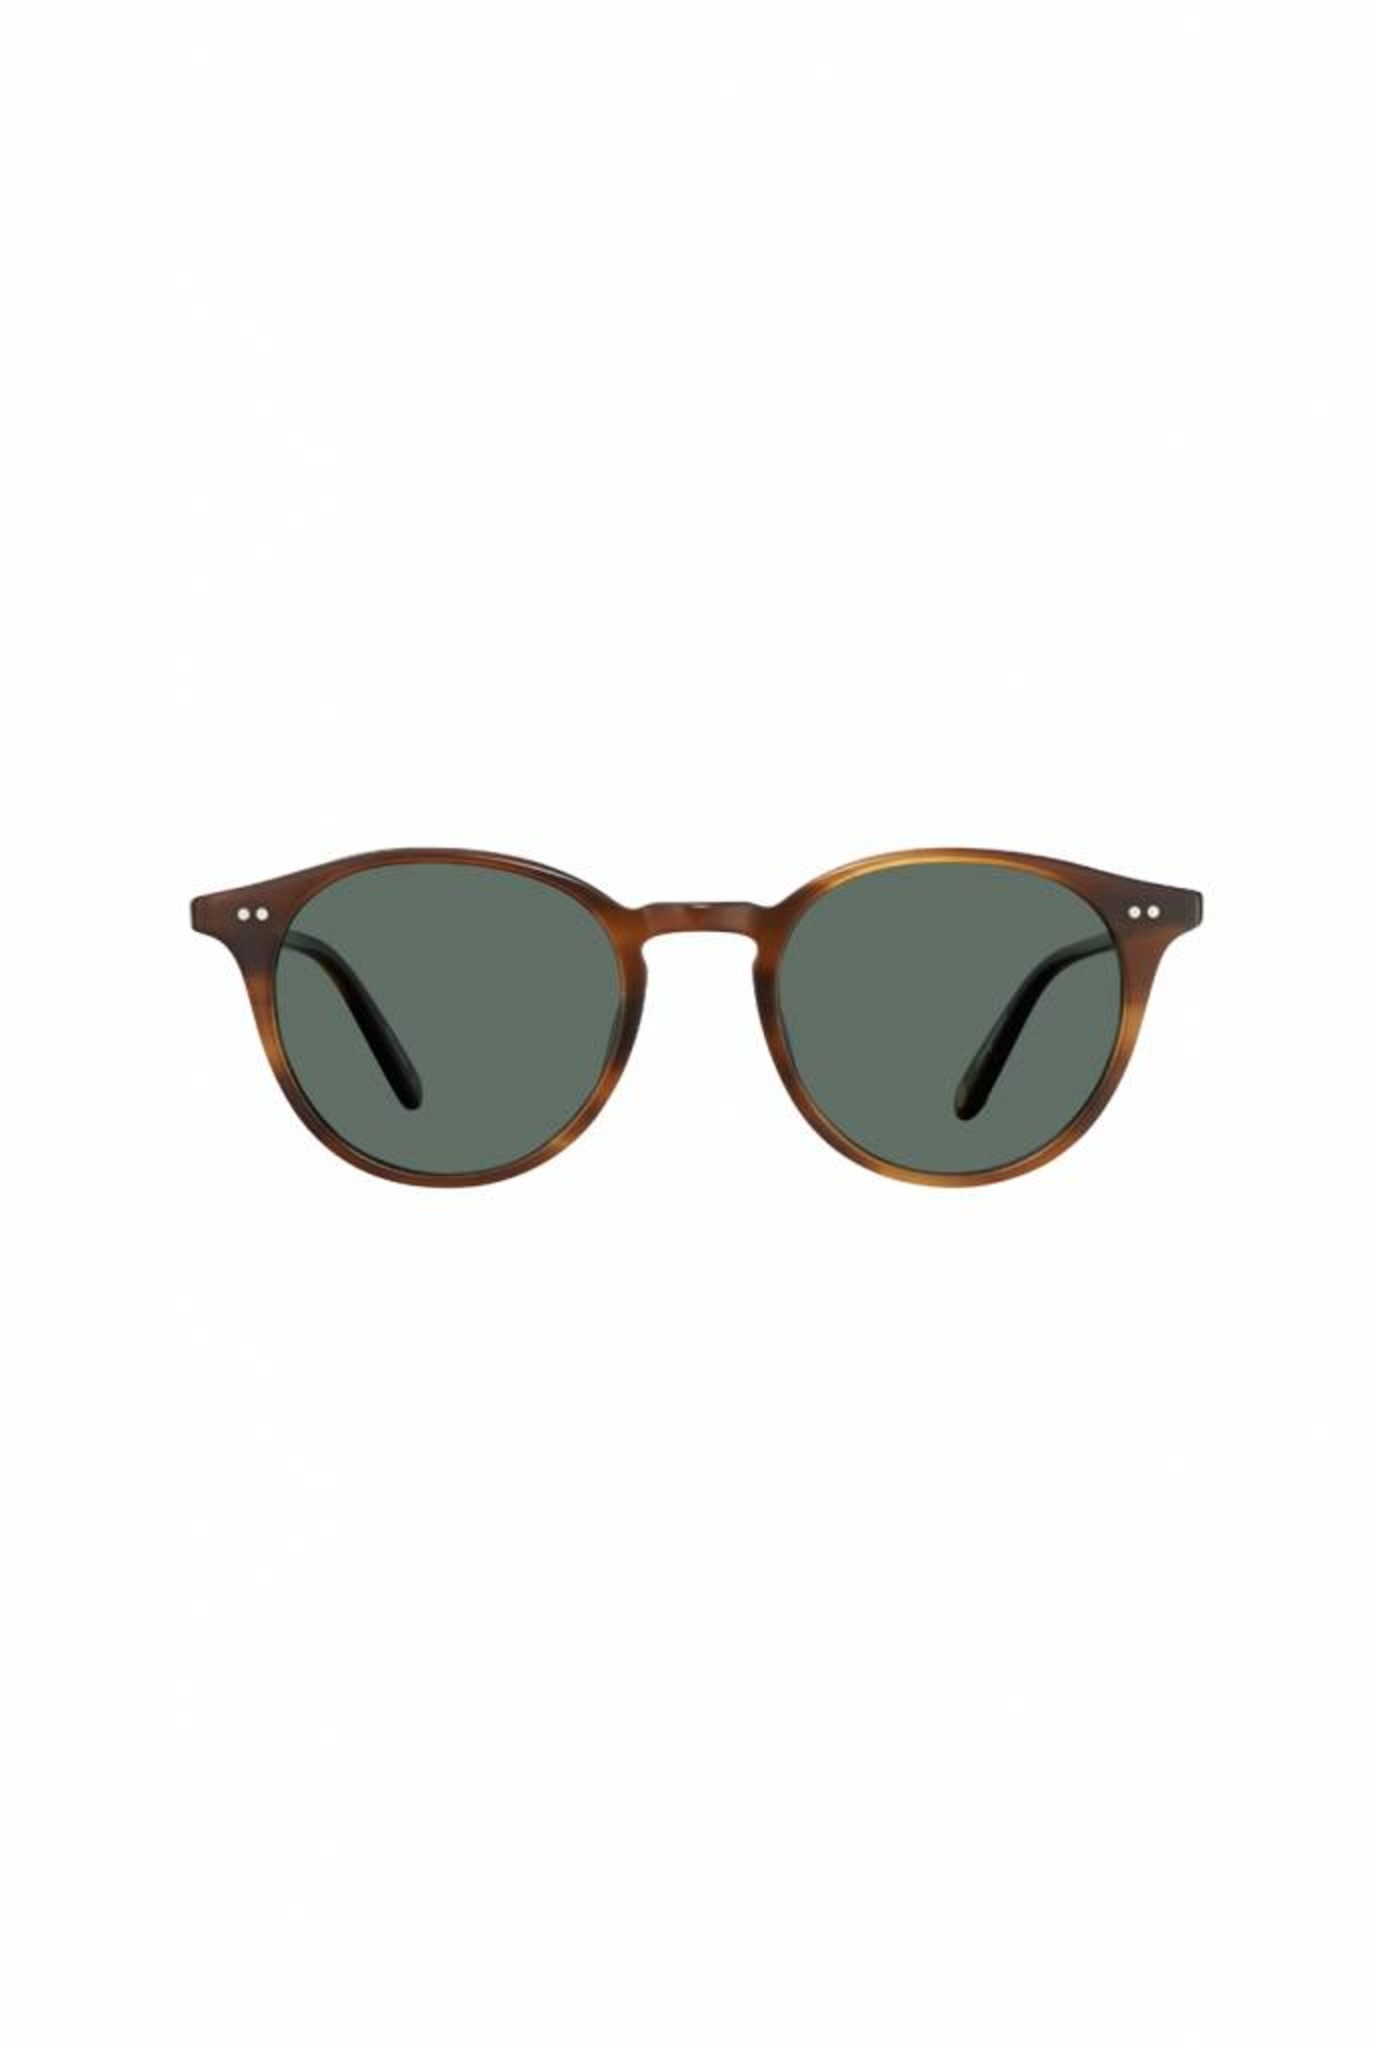 Clune sunglasses True Demi/Semi-flat Pure G15